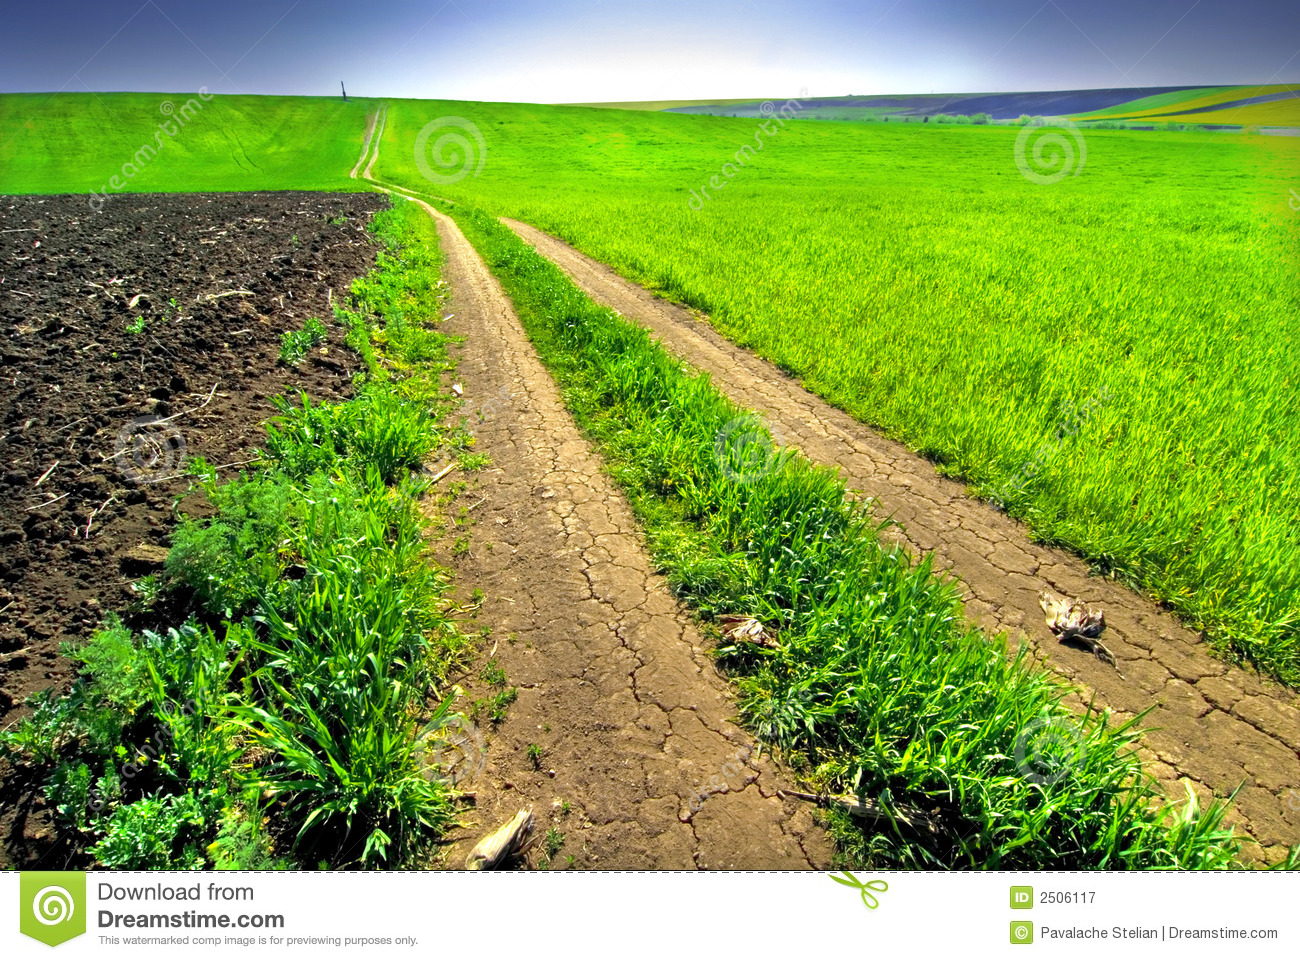 Dirt lane in the middle of a farming area with a green field on one ...